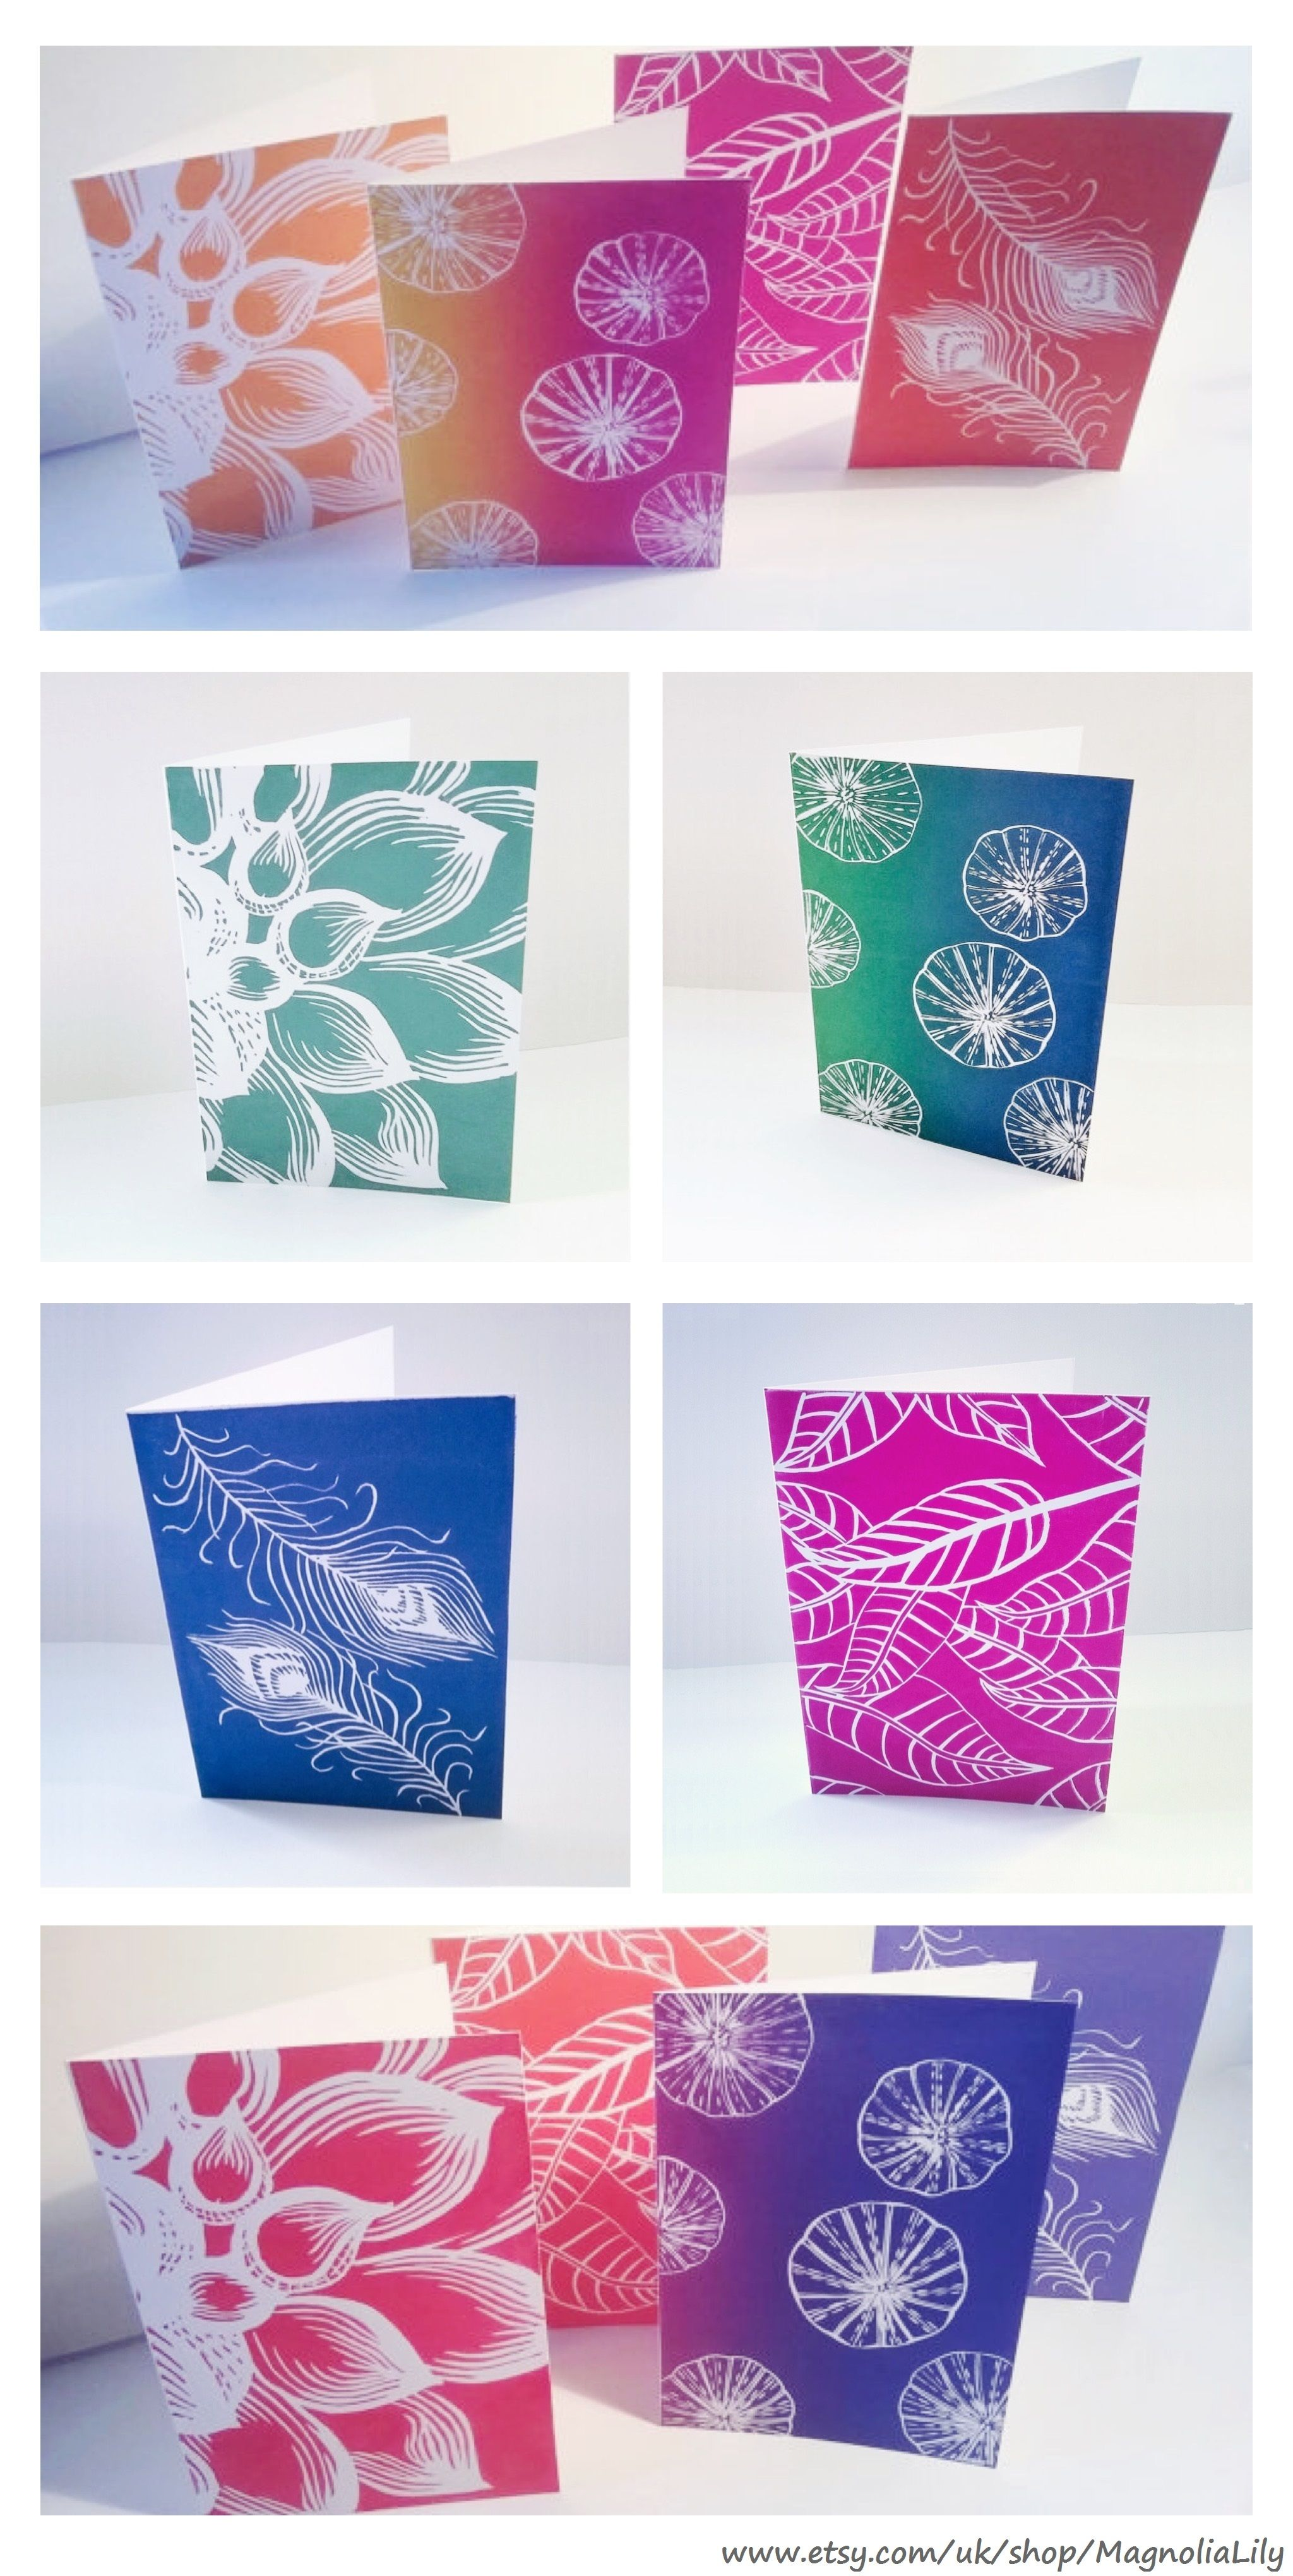 Linocut print cards by Magnolia Lily on Etsy.